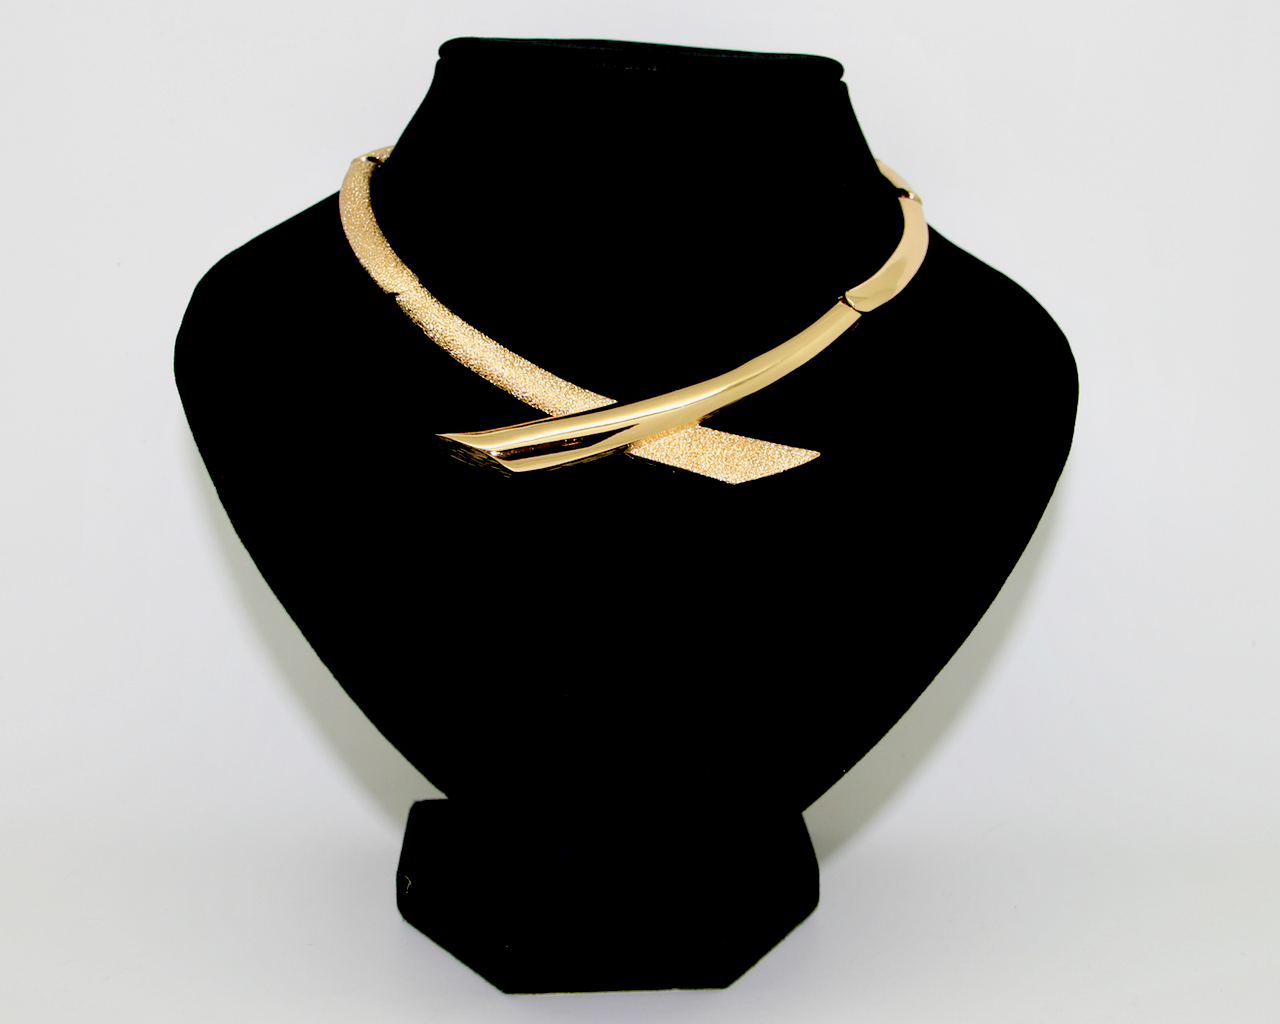 1970's MONET textured and smooth gold articulated crossover necklace